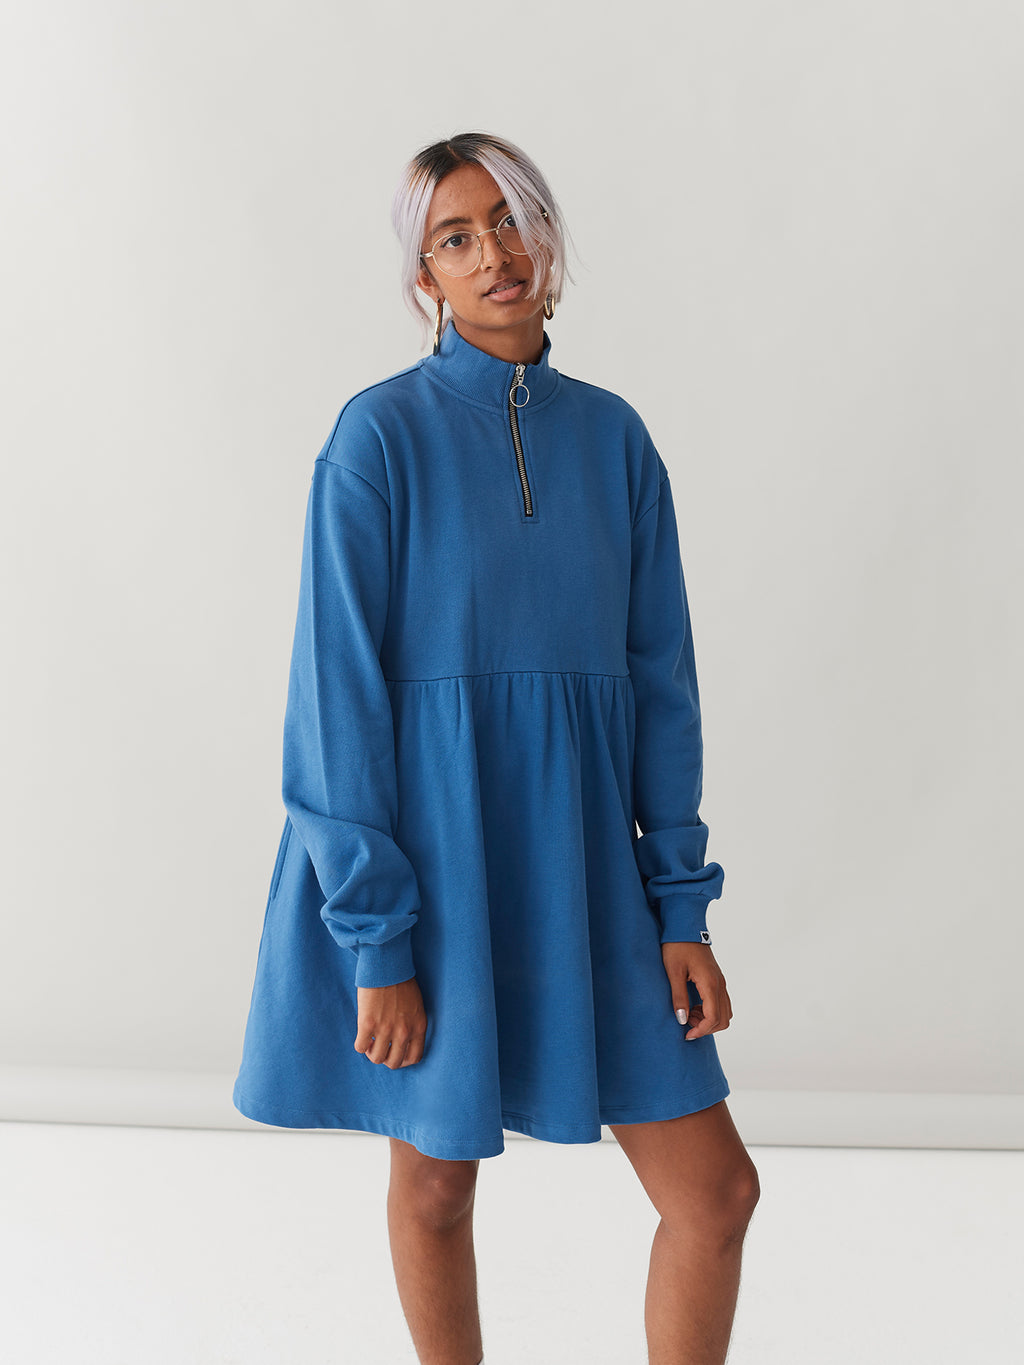 LO Sally Sweater Dress - Blue